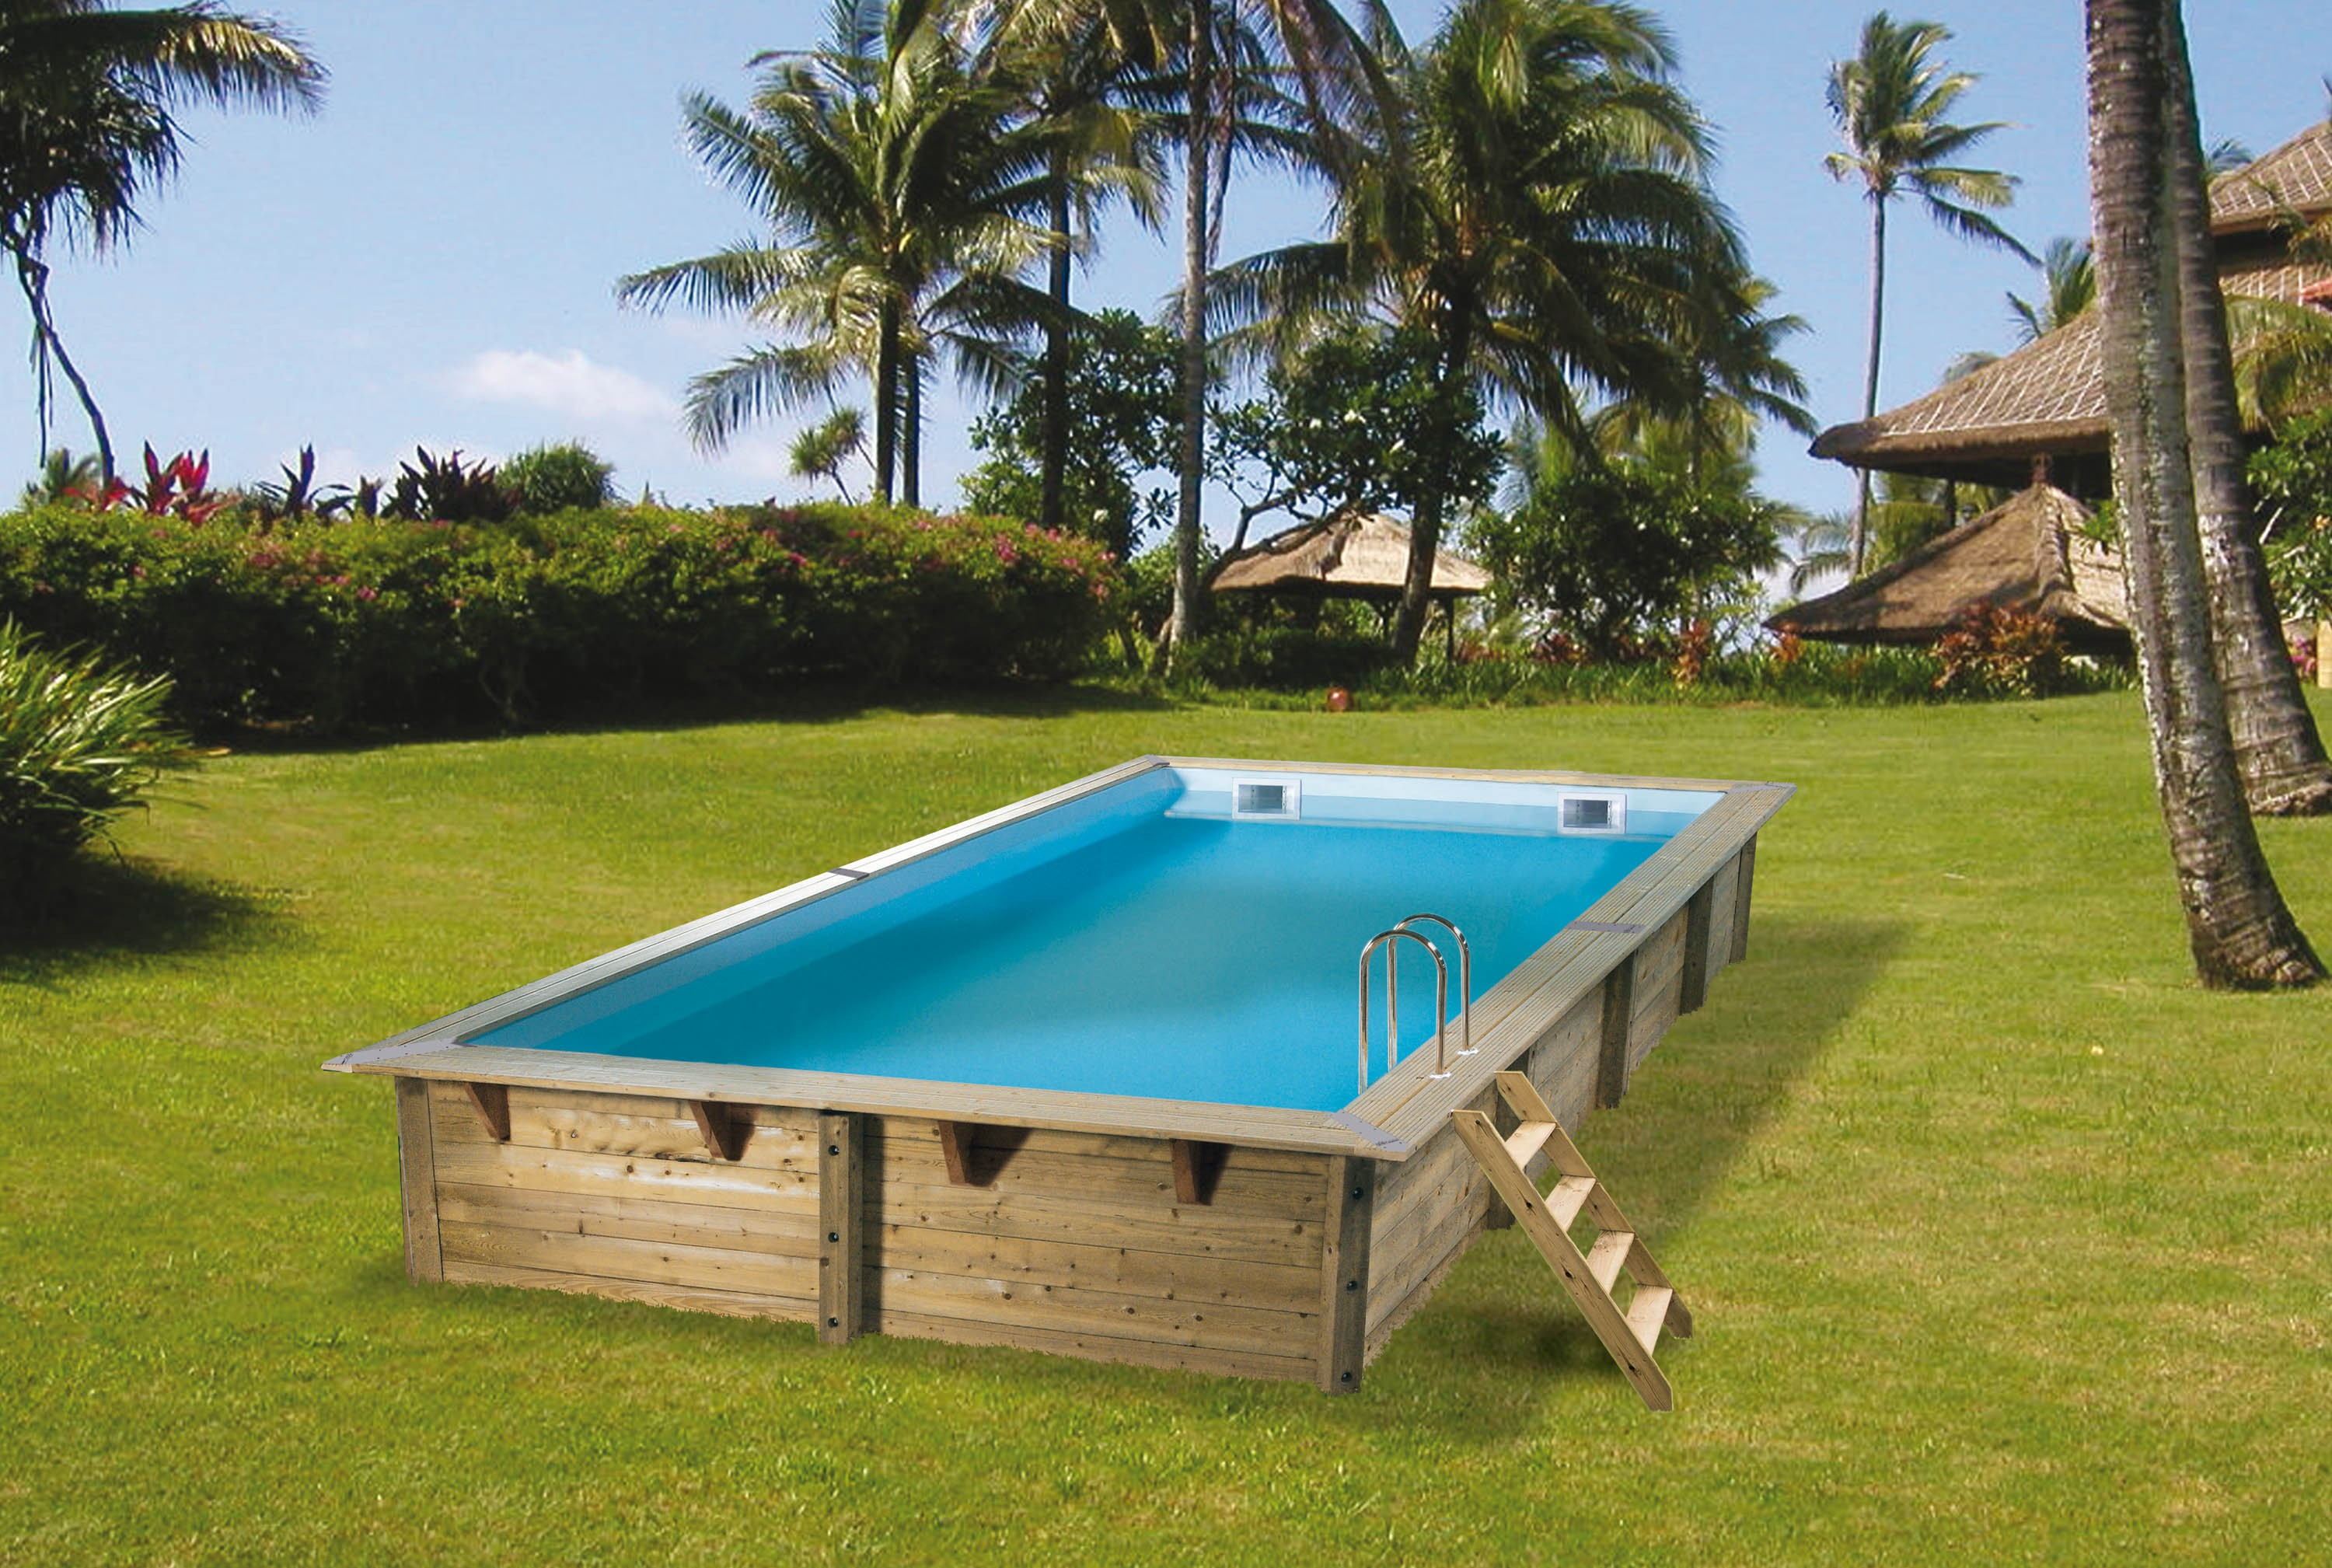 Piscine bois ubbink linea rectangulaire en kit for Piscine bois en kit